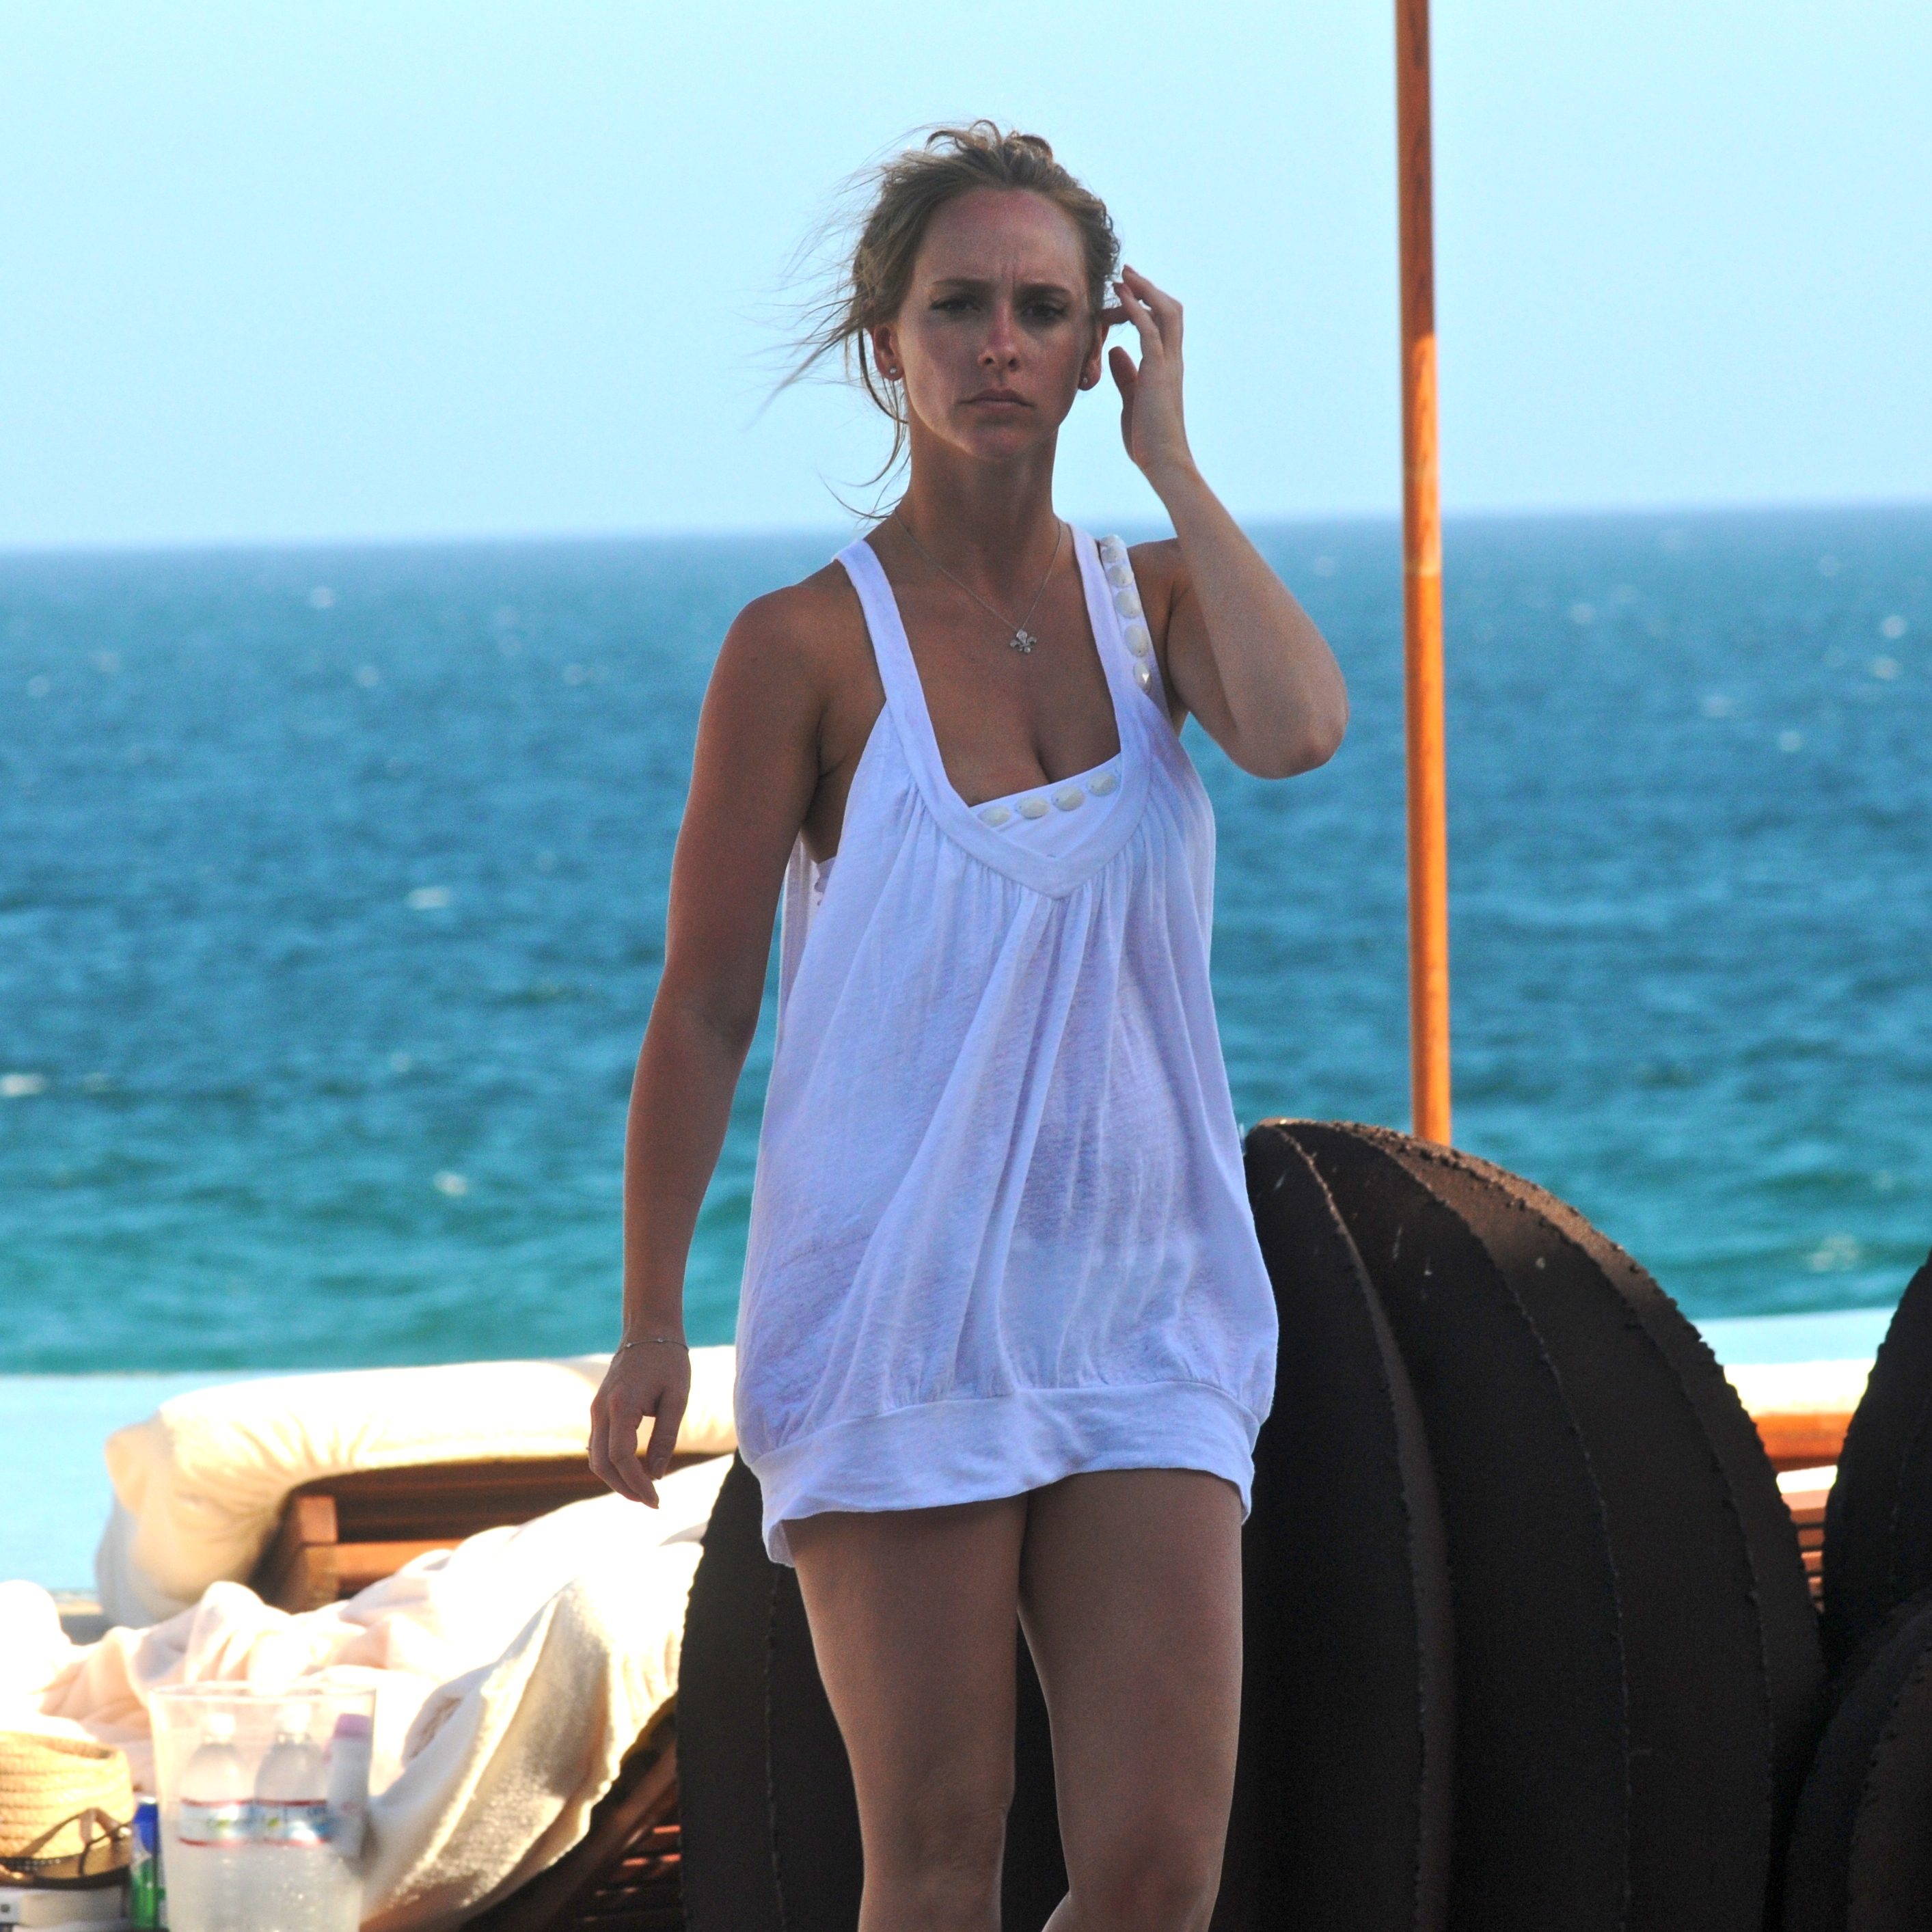 97369_Jennifer_Love_Hewitt_-_poolside_at_her_hotel_in_Mexico_-_March_24_13_122_594lo.jpg